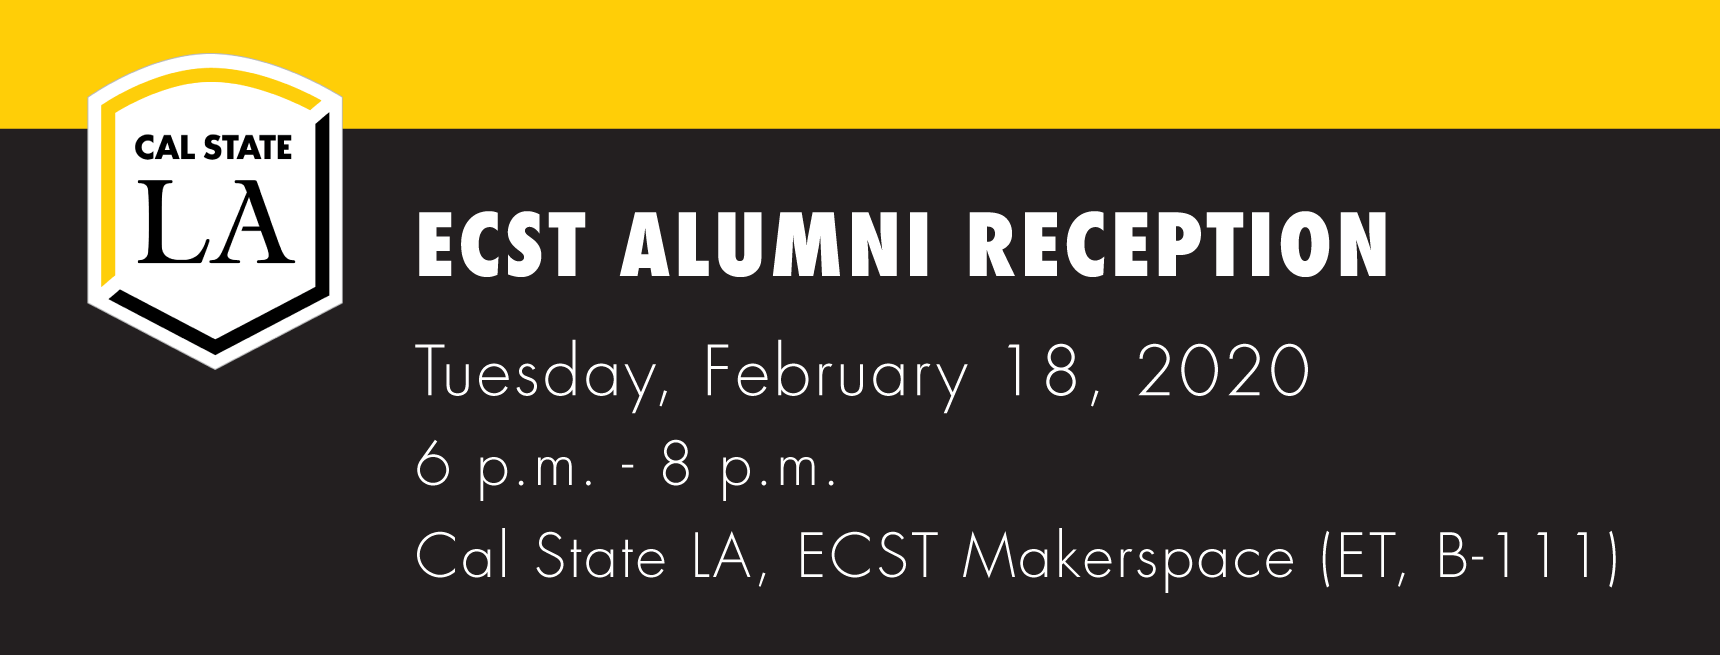 Black and gold ECST Alumni Reception banner. Text: ECST Alumni Reception, Tuesday, February 18, 2020, 6-8 p.m., Cal State LA, ECST Makerspace Lab (E&T B-111)